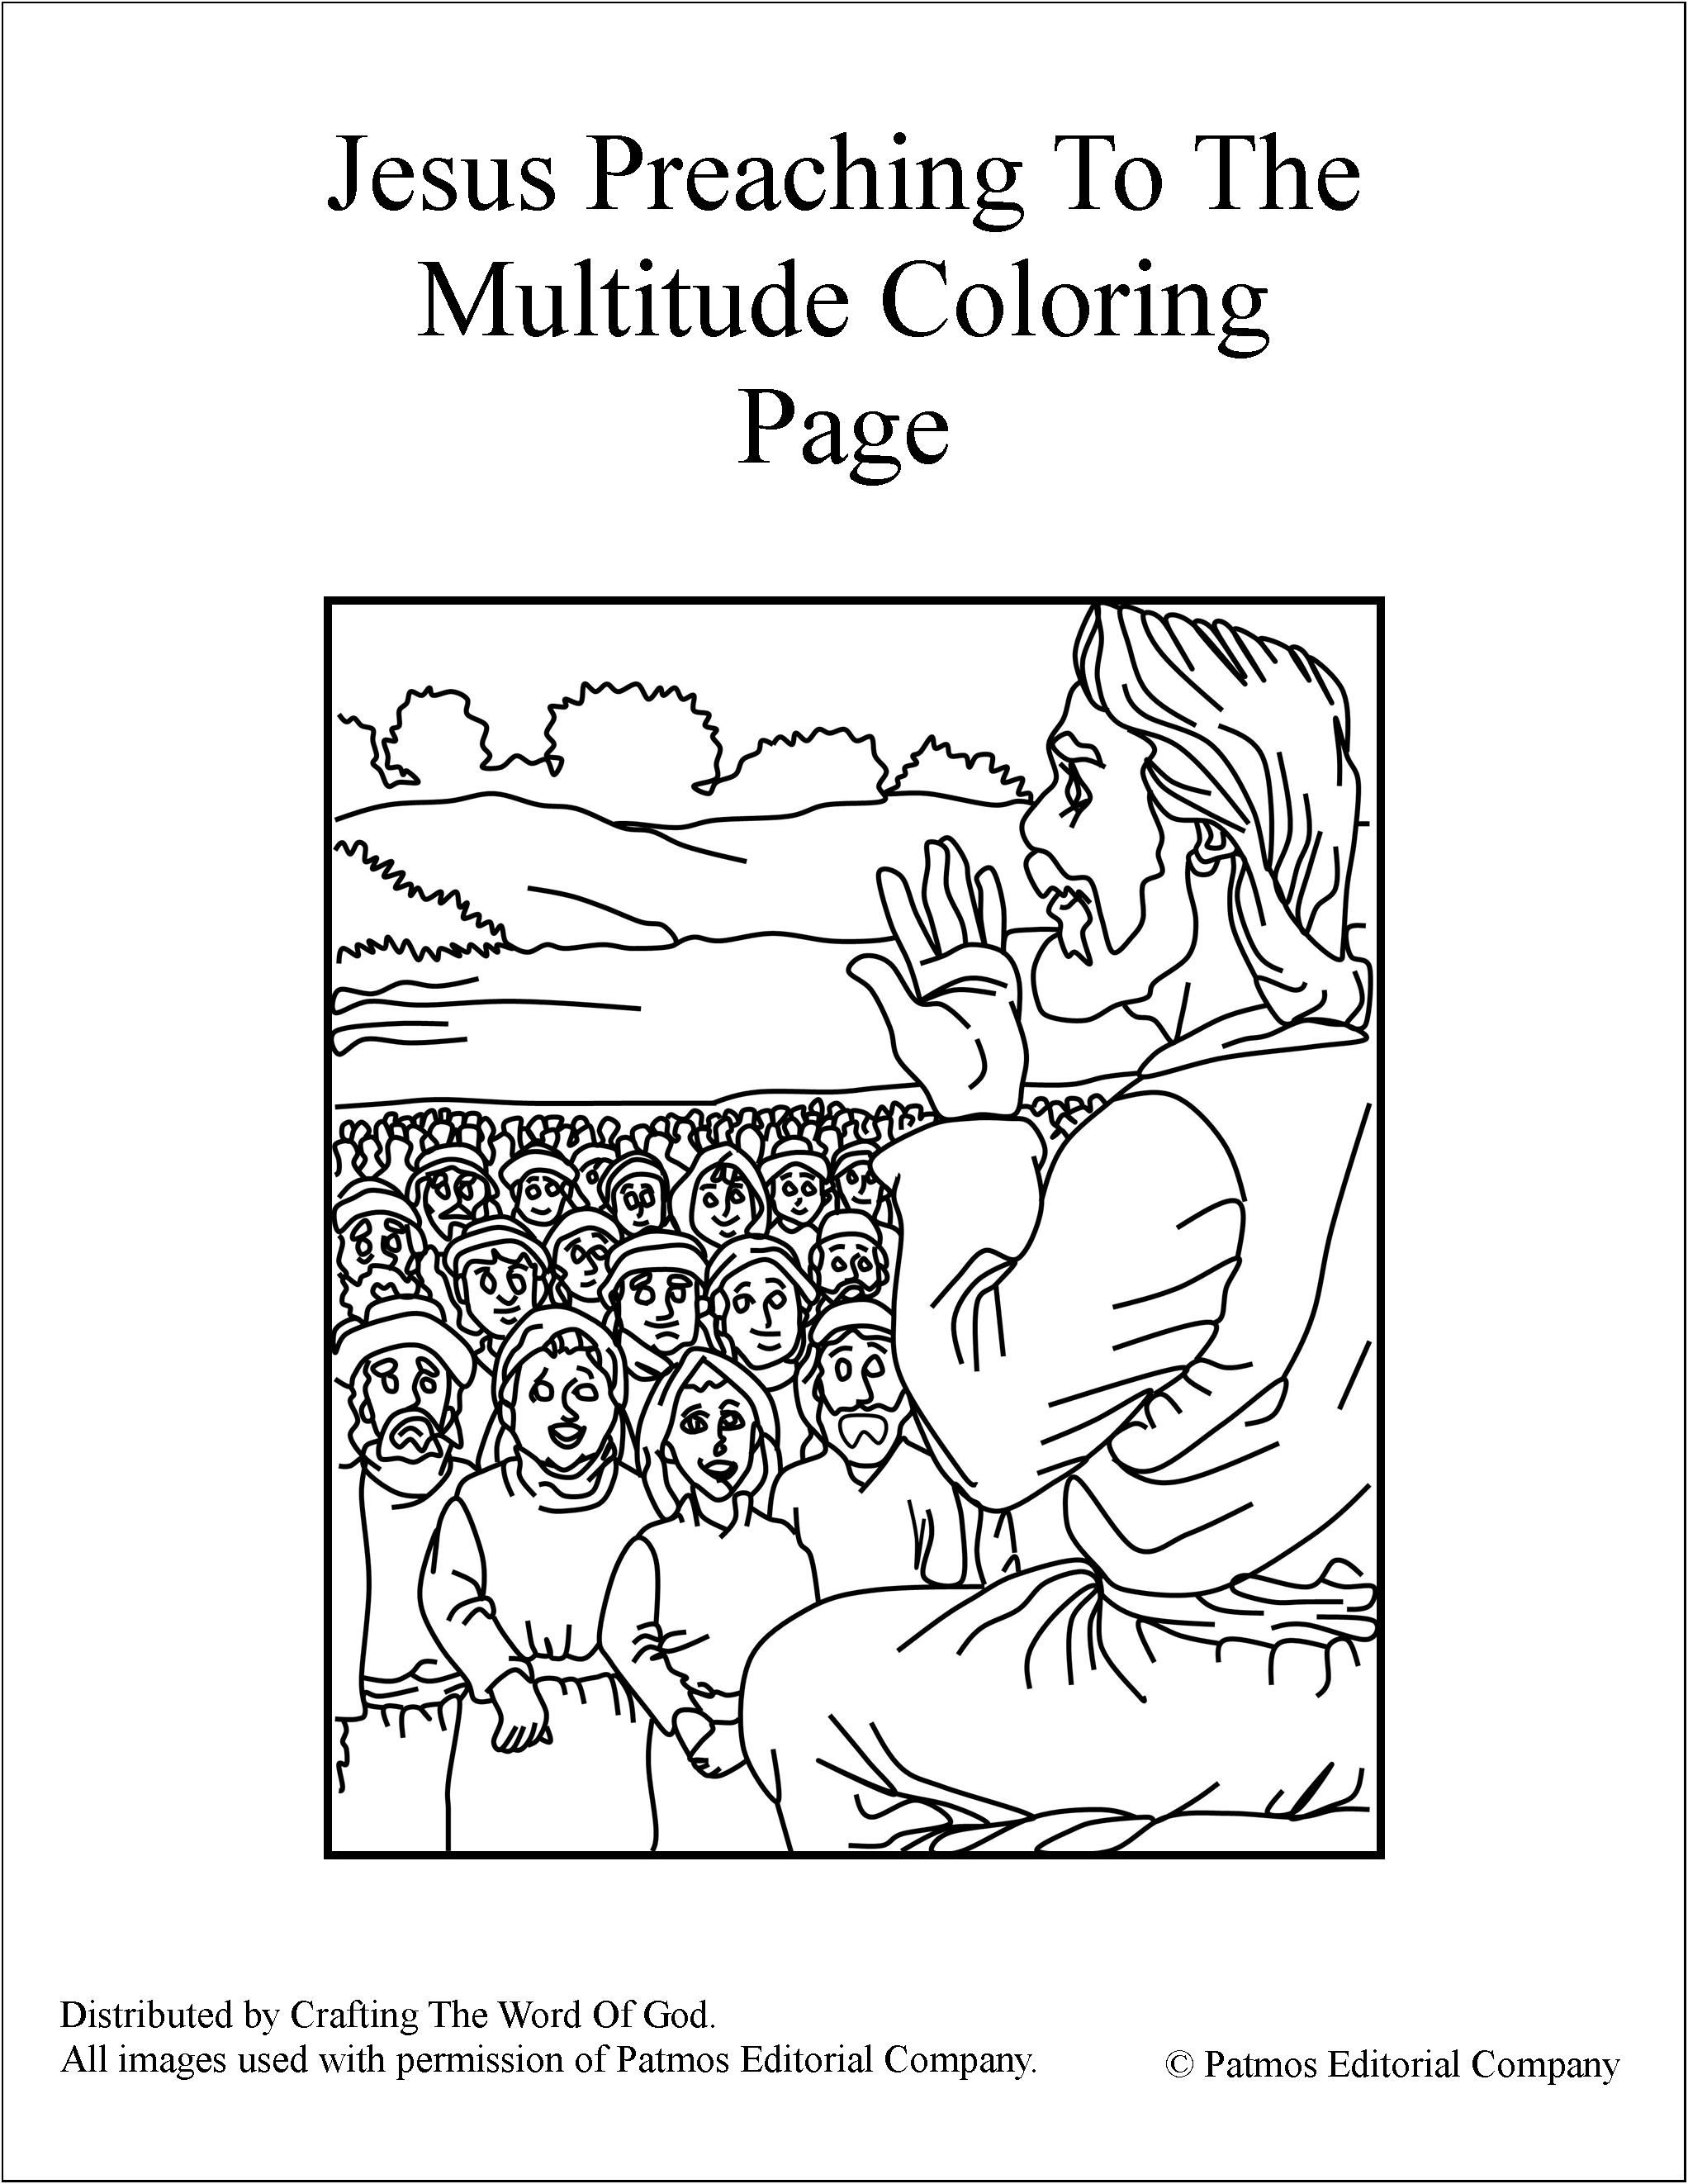 Jesus Preaching To The Multitude Coloring Page Coloring Pages